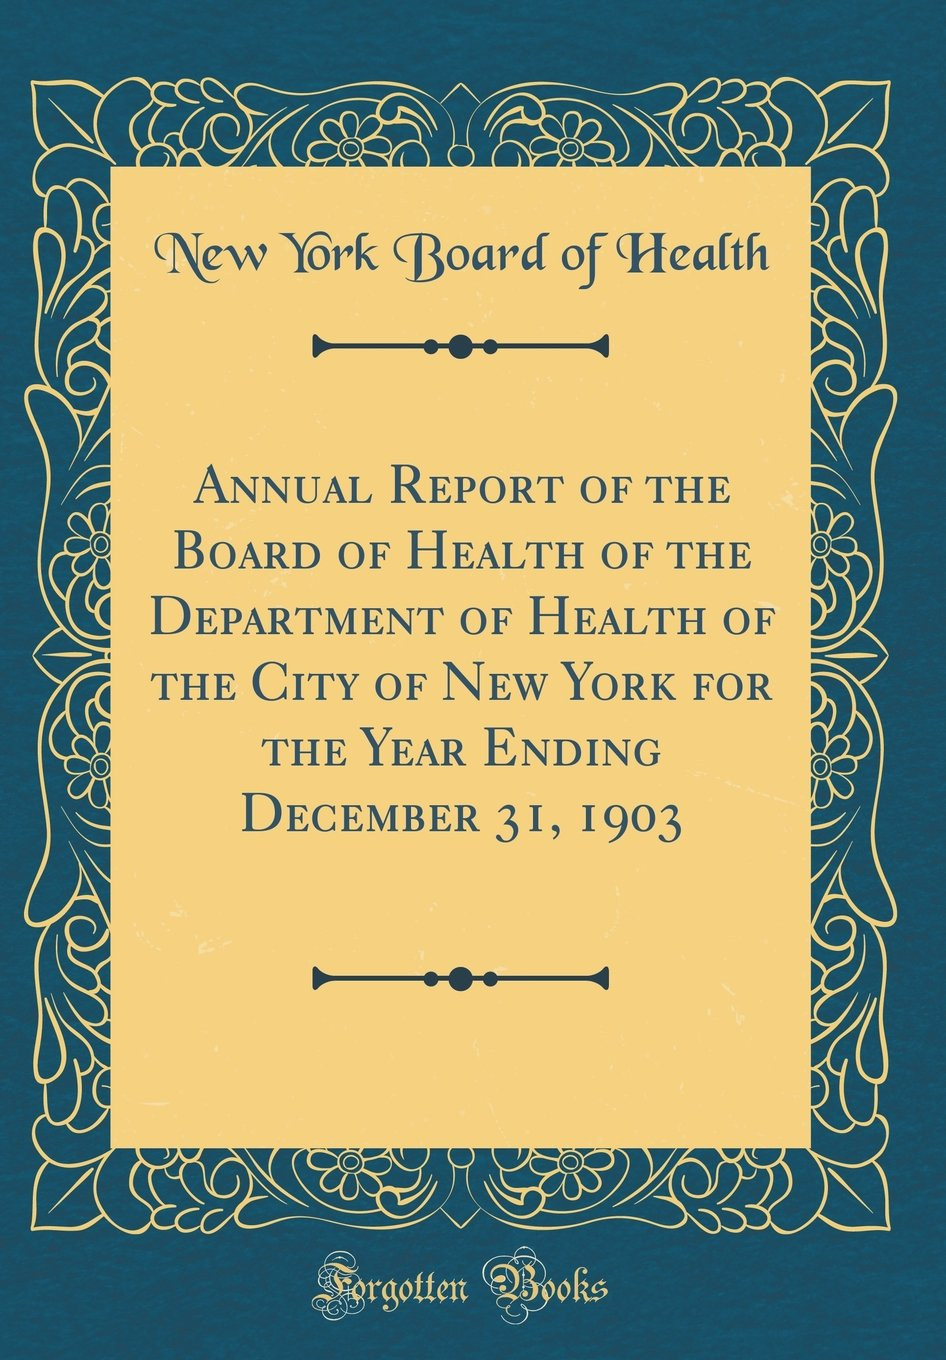 Annual Report of the Board of Health of the Department of Health of the City of New York for the Year Ending December 31, 1903 (Classic Reprint) ebook